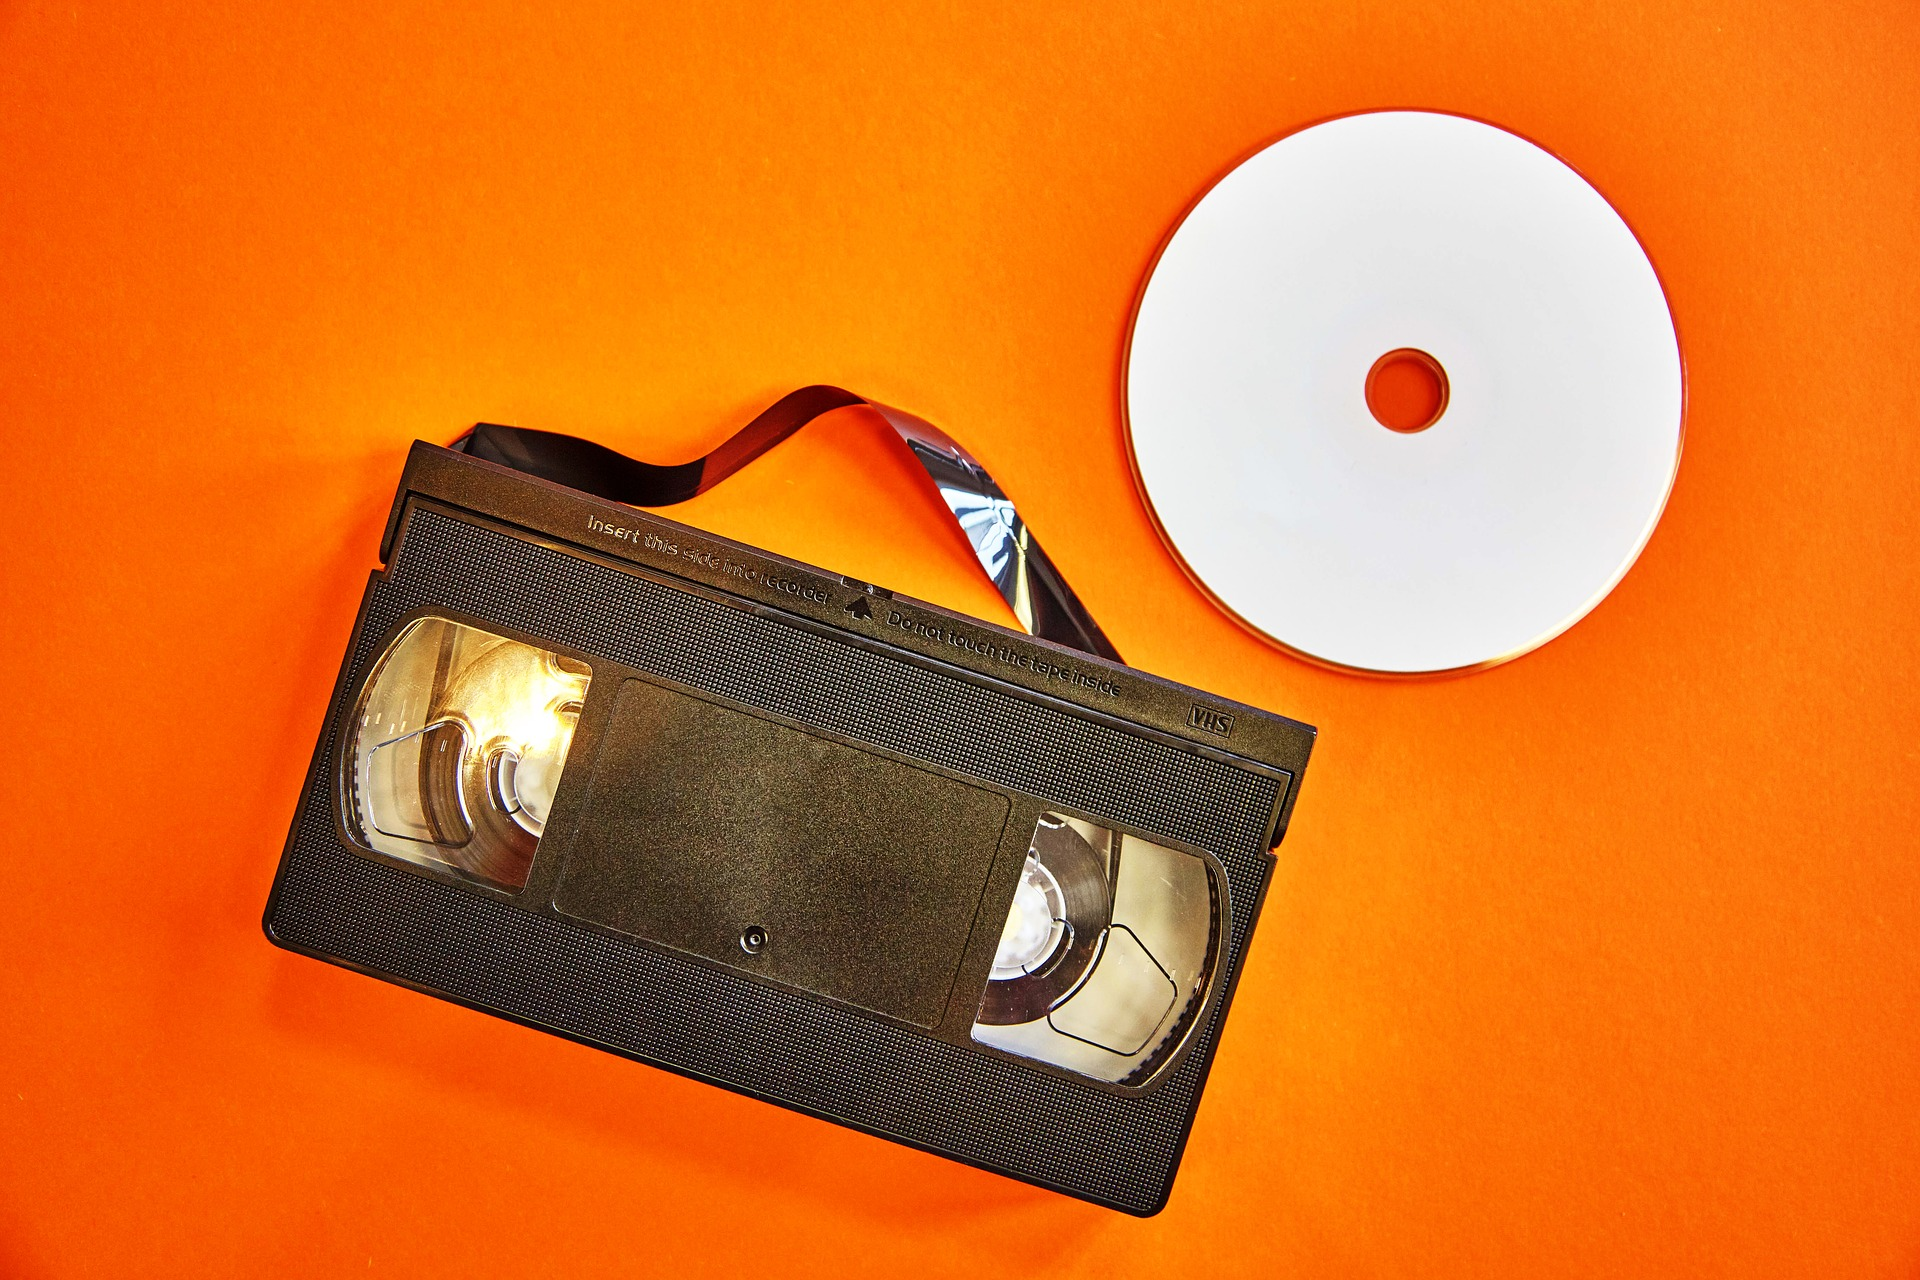 vhs video and a dvd